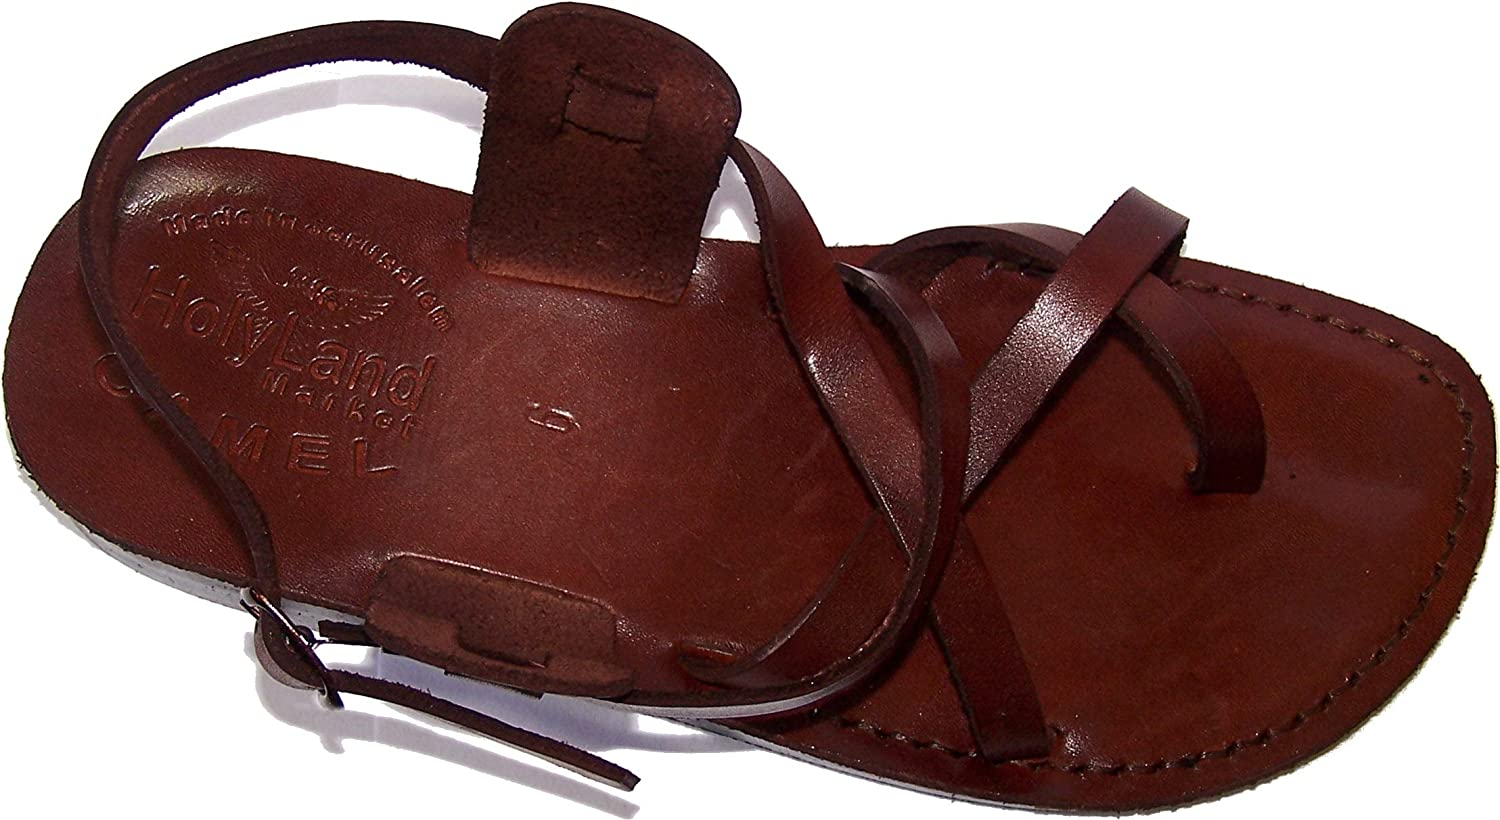 Vintage Sandals | Wedges, Espadrilles – 30s, 40s, 50s, 60s, 70s Holy Land Market Unisex Adults/Children Genuine Leather Biblical Sandals (Jesus - Yashua) Style IV $34.49 AT vintagedancer.com